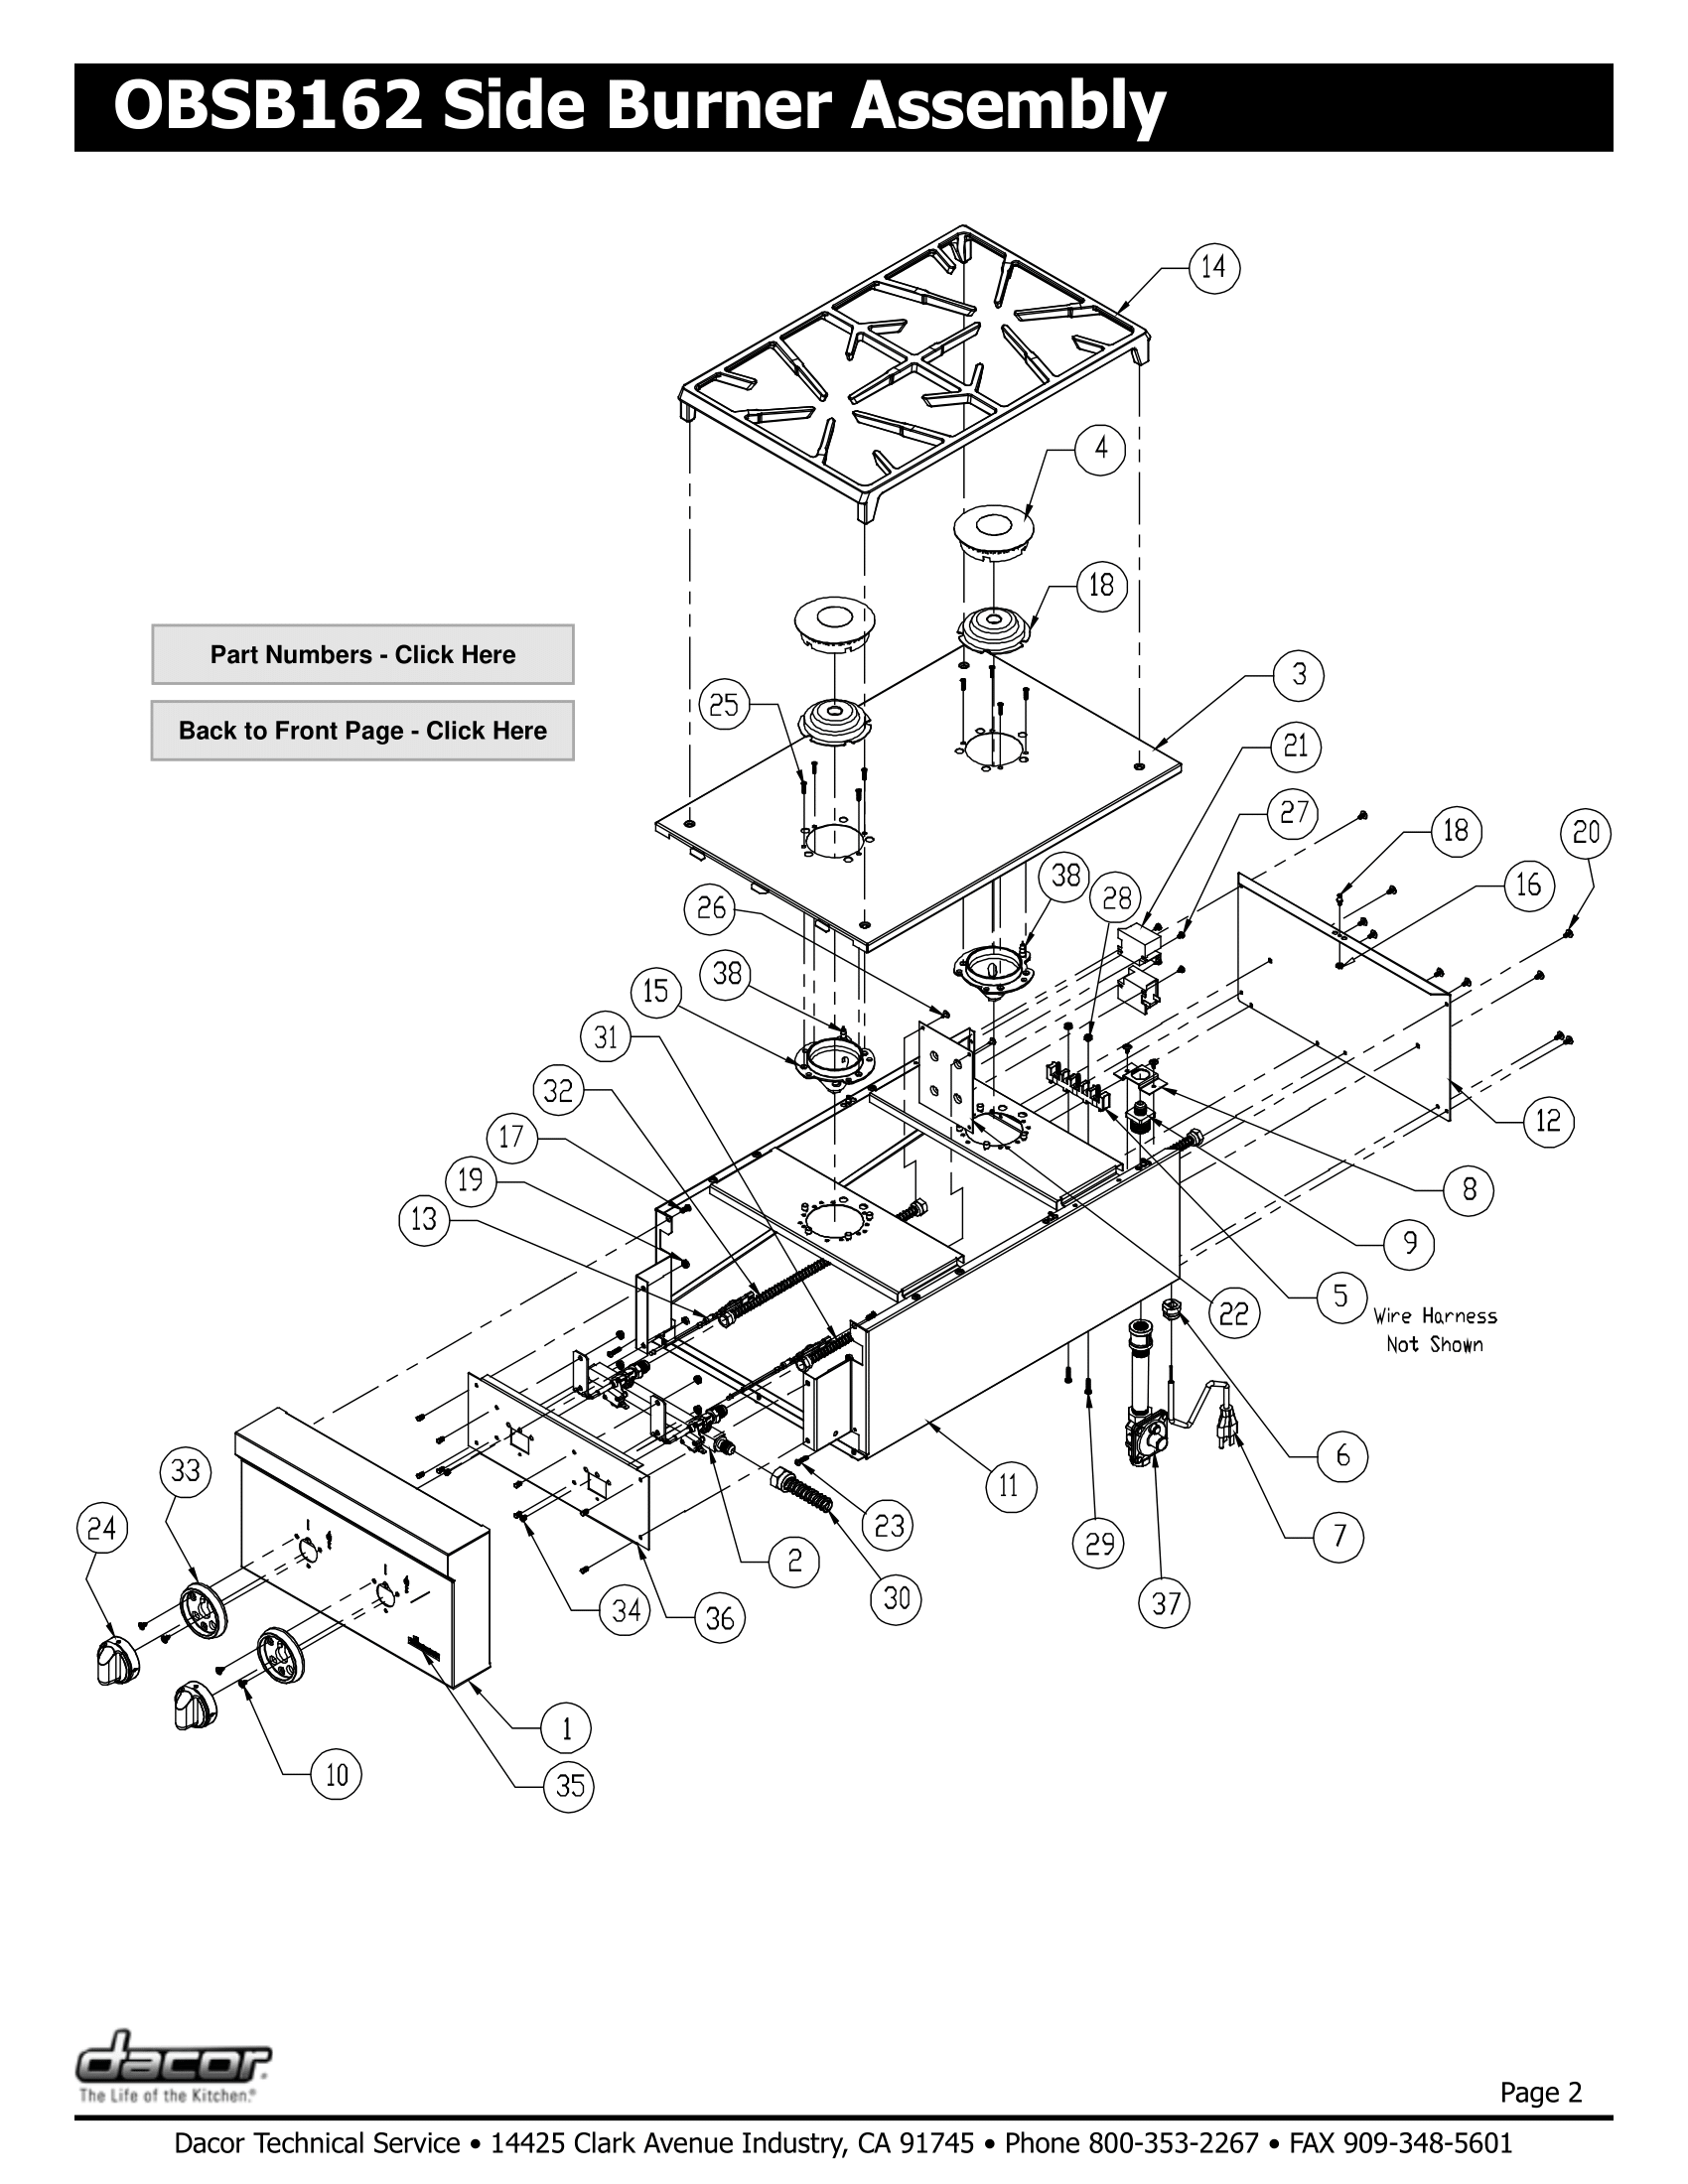 Dacor OBSB162 Assembly Schematic & Parts